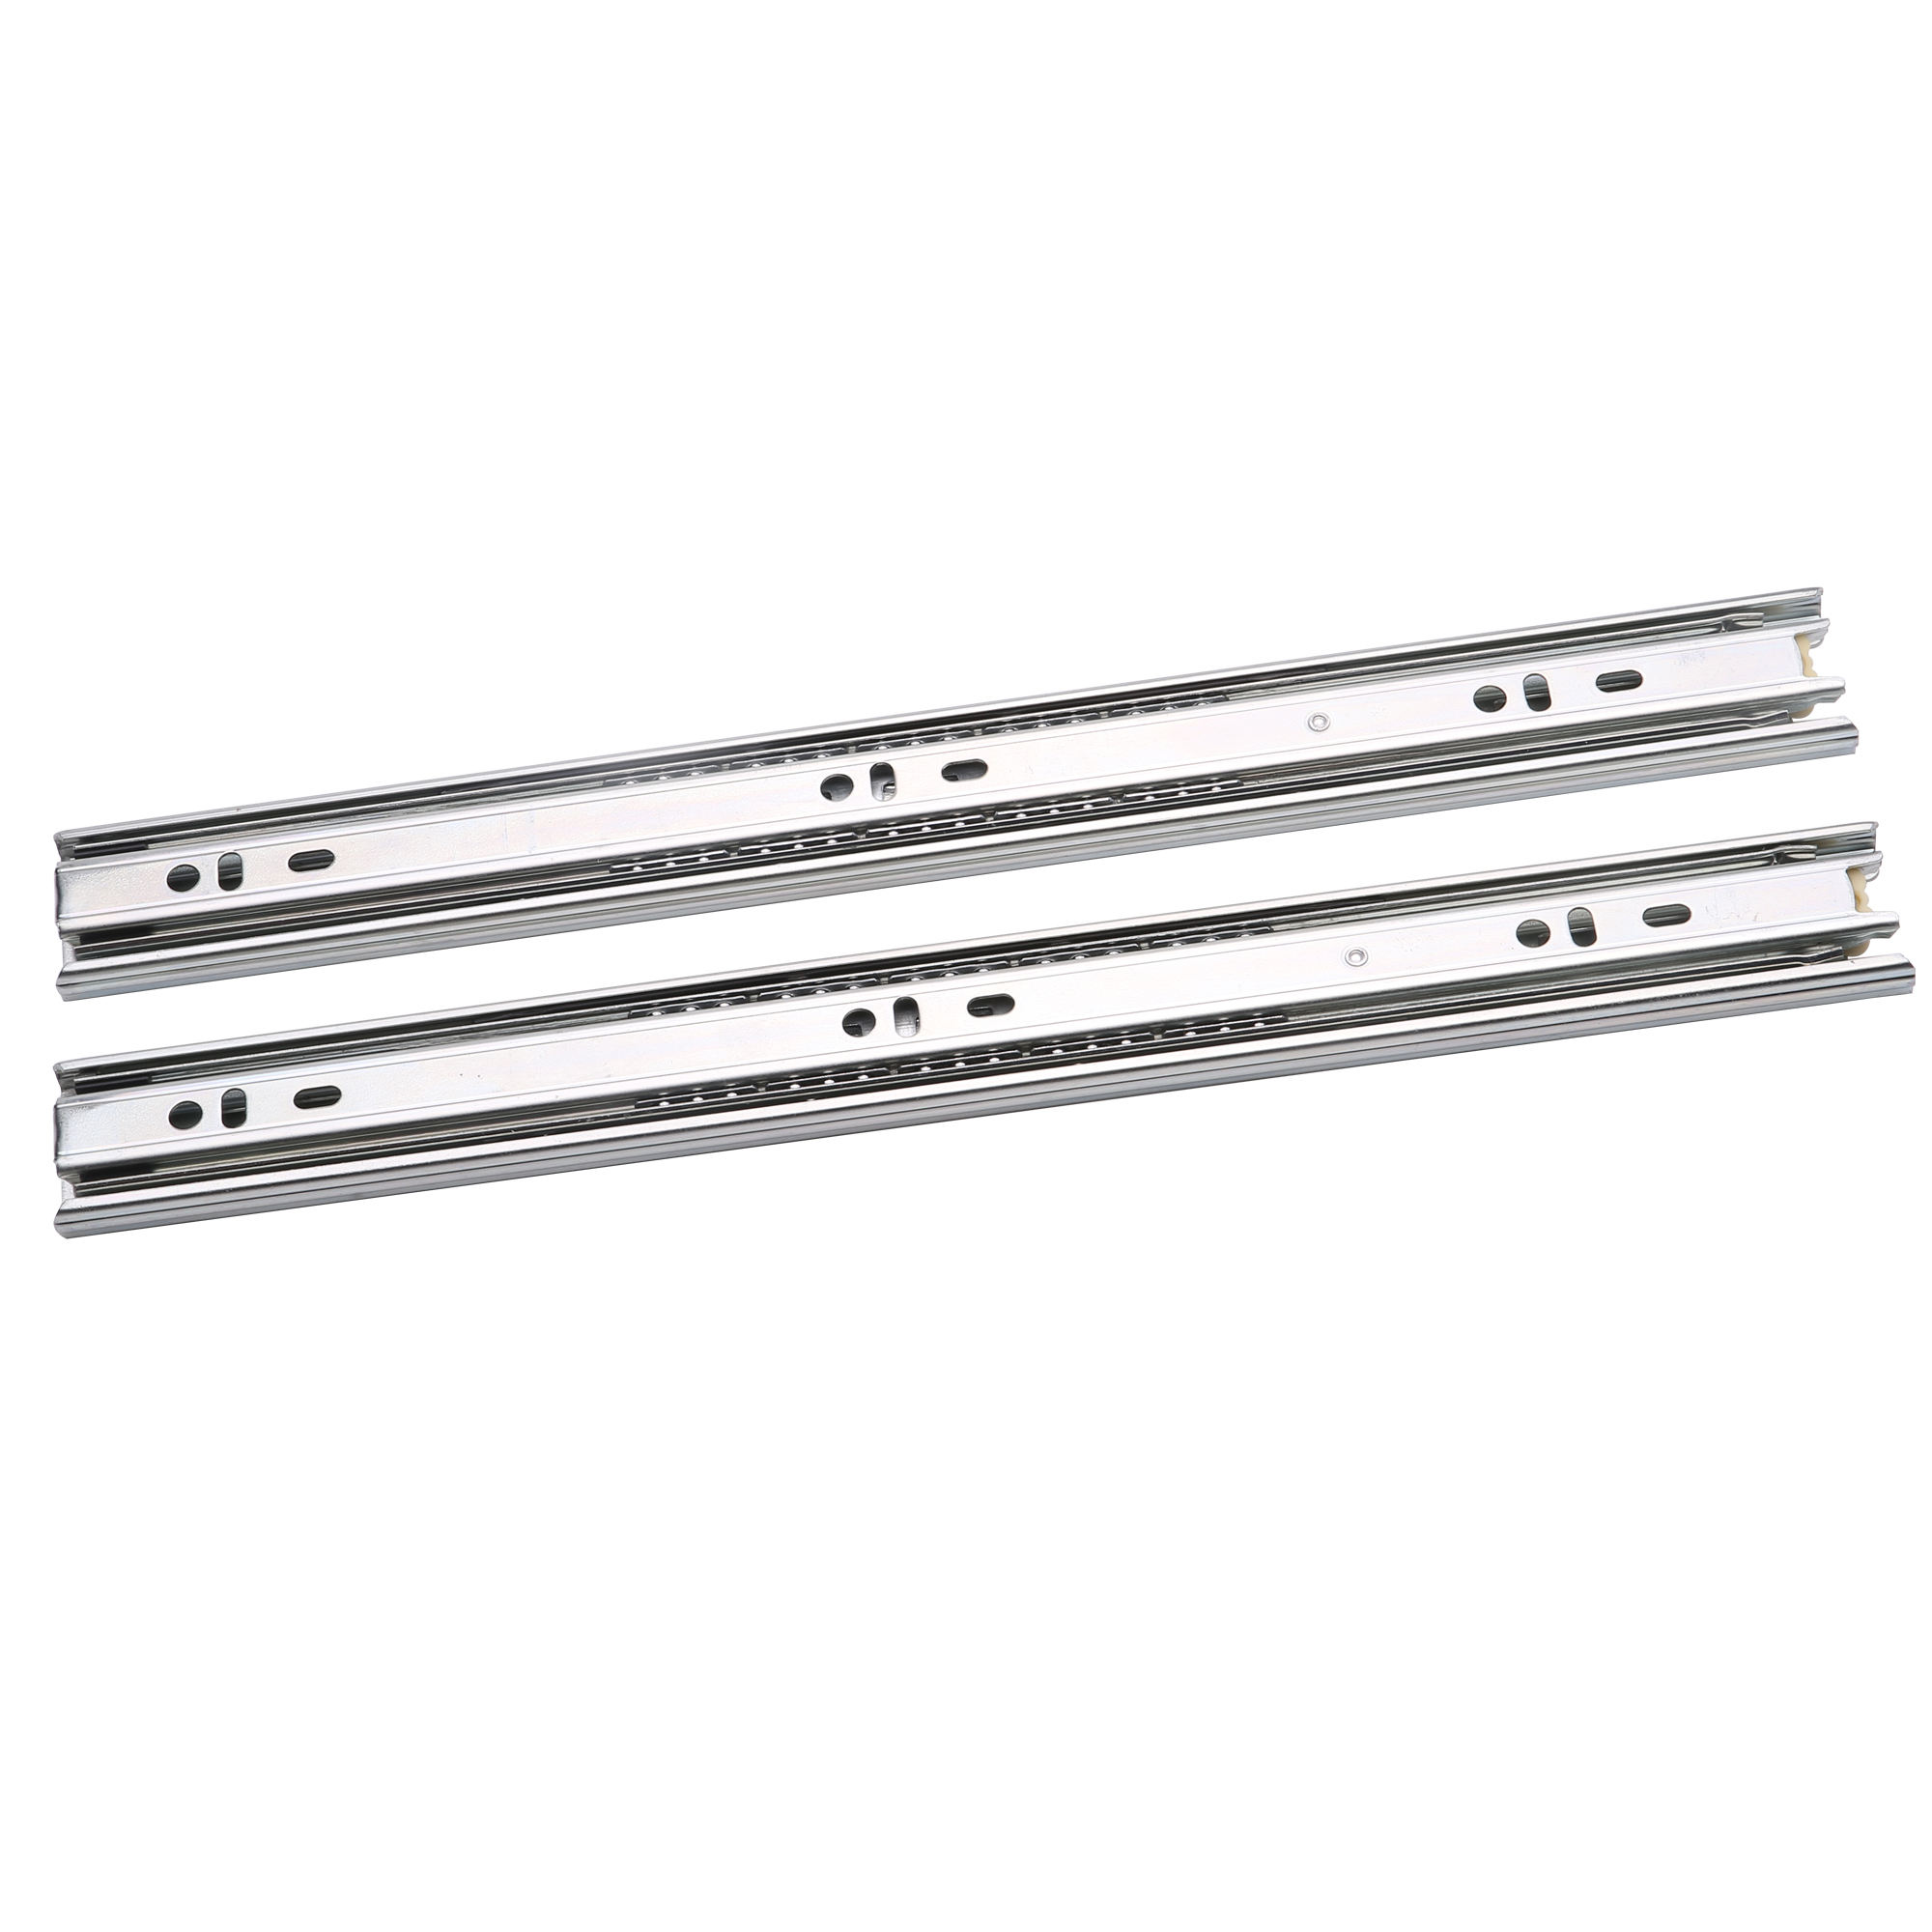 3 Fold Full Extension Ball Bearing Drawer Slide/Telescopic Channel